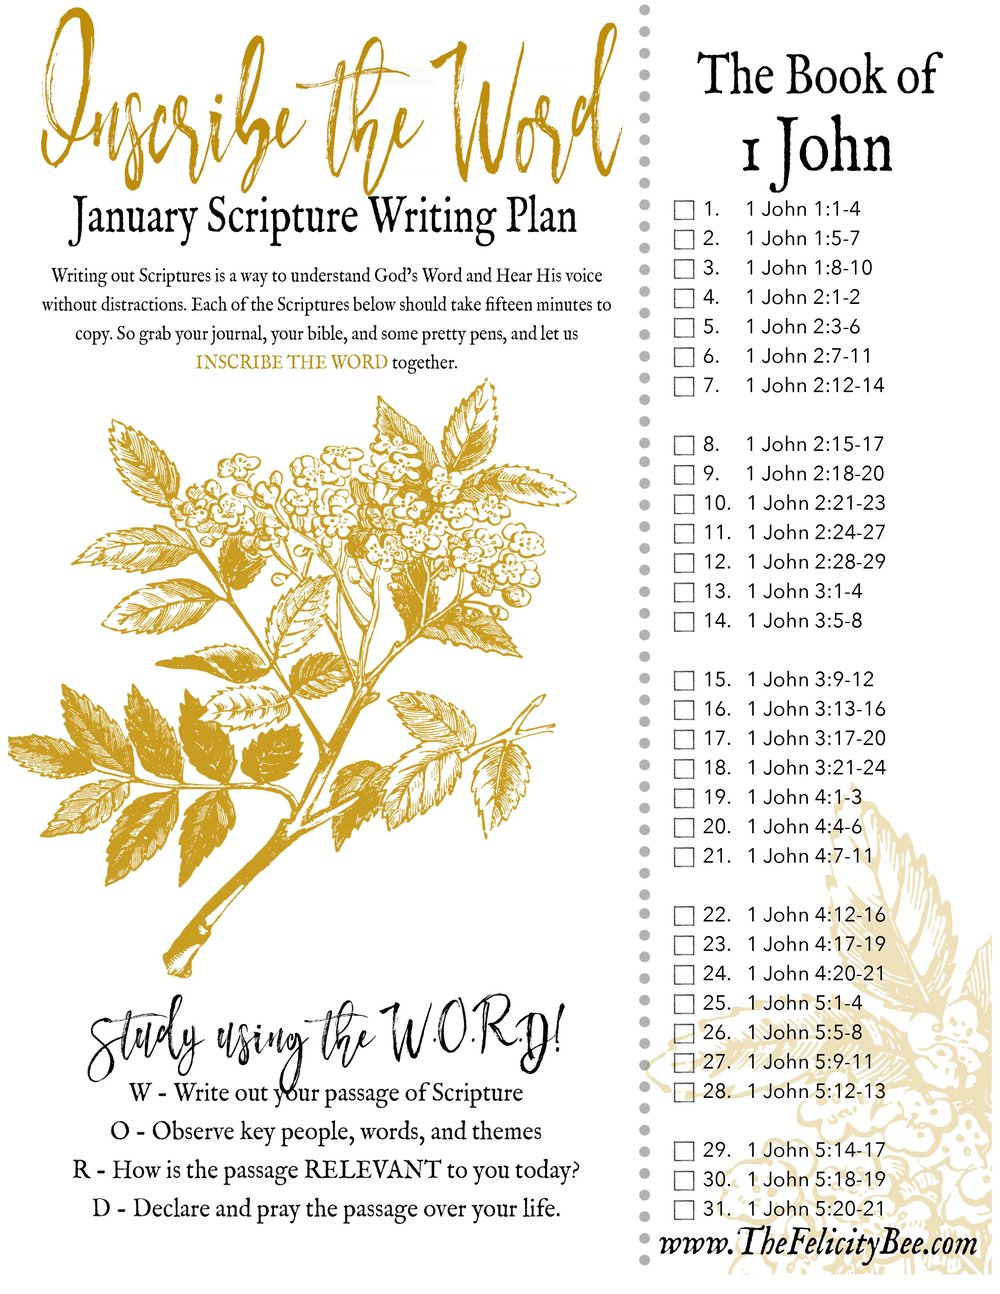 CLICK HERE  to download your 2018 January Scripture Writing Plan.